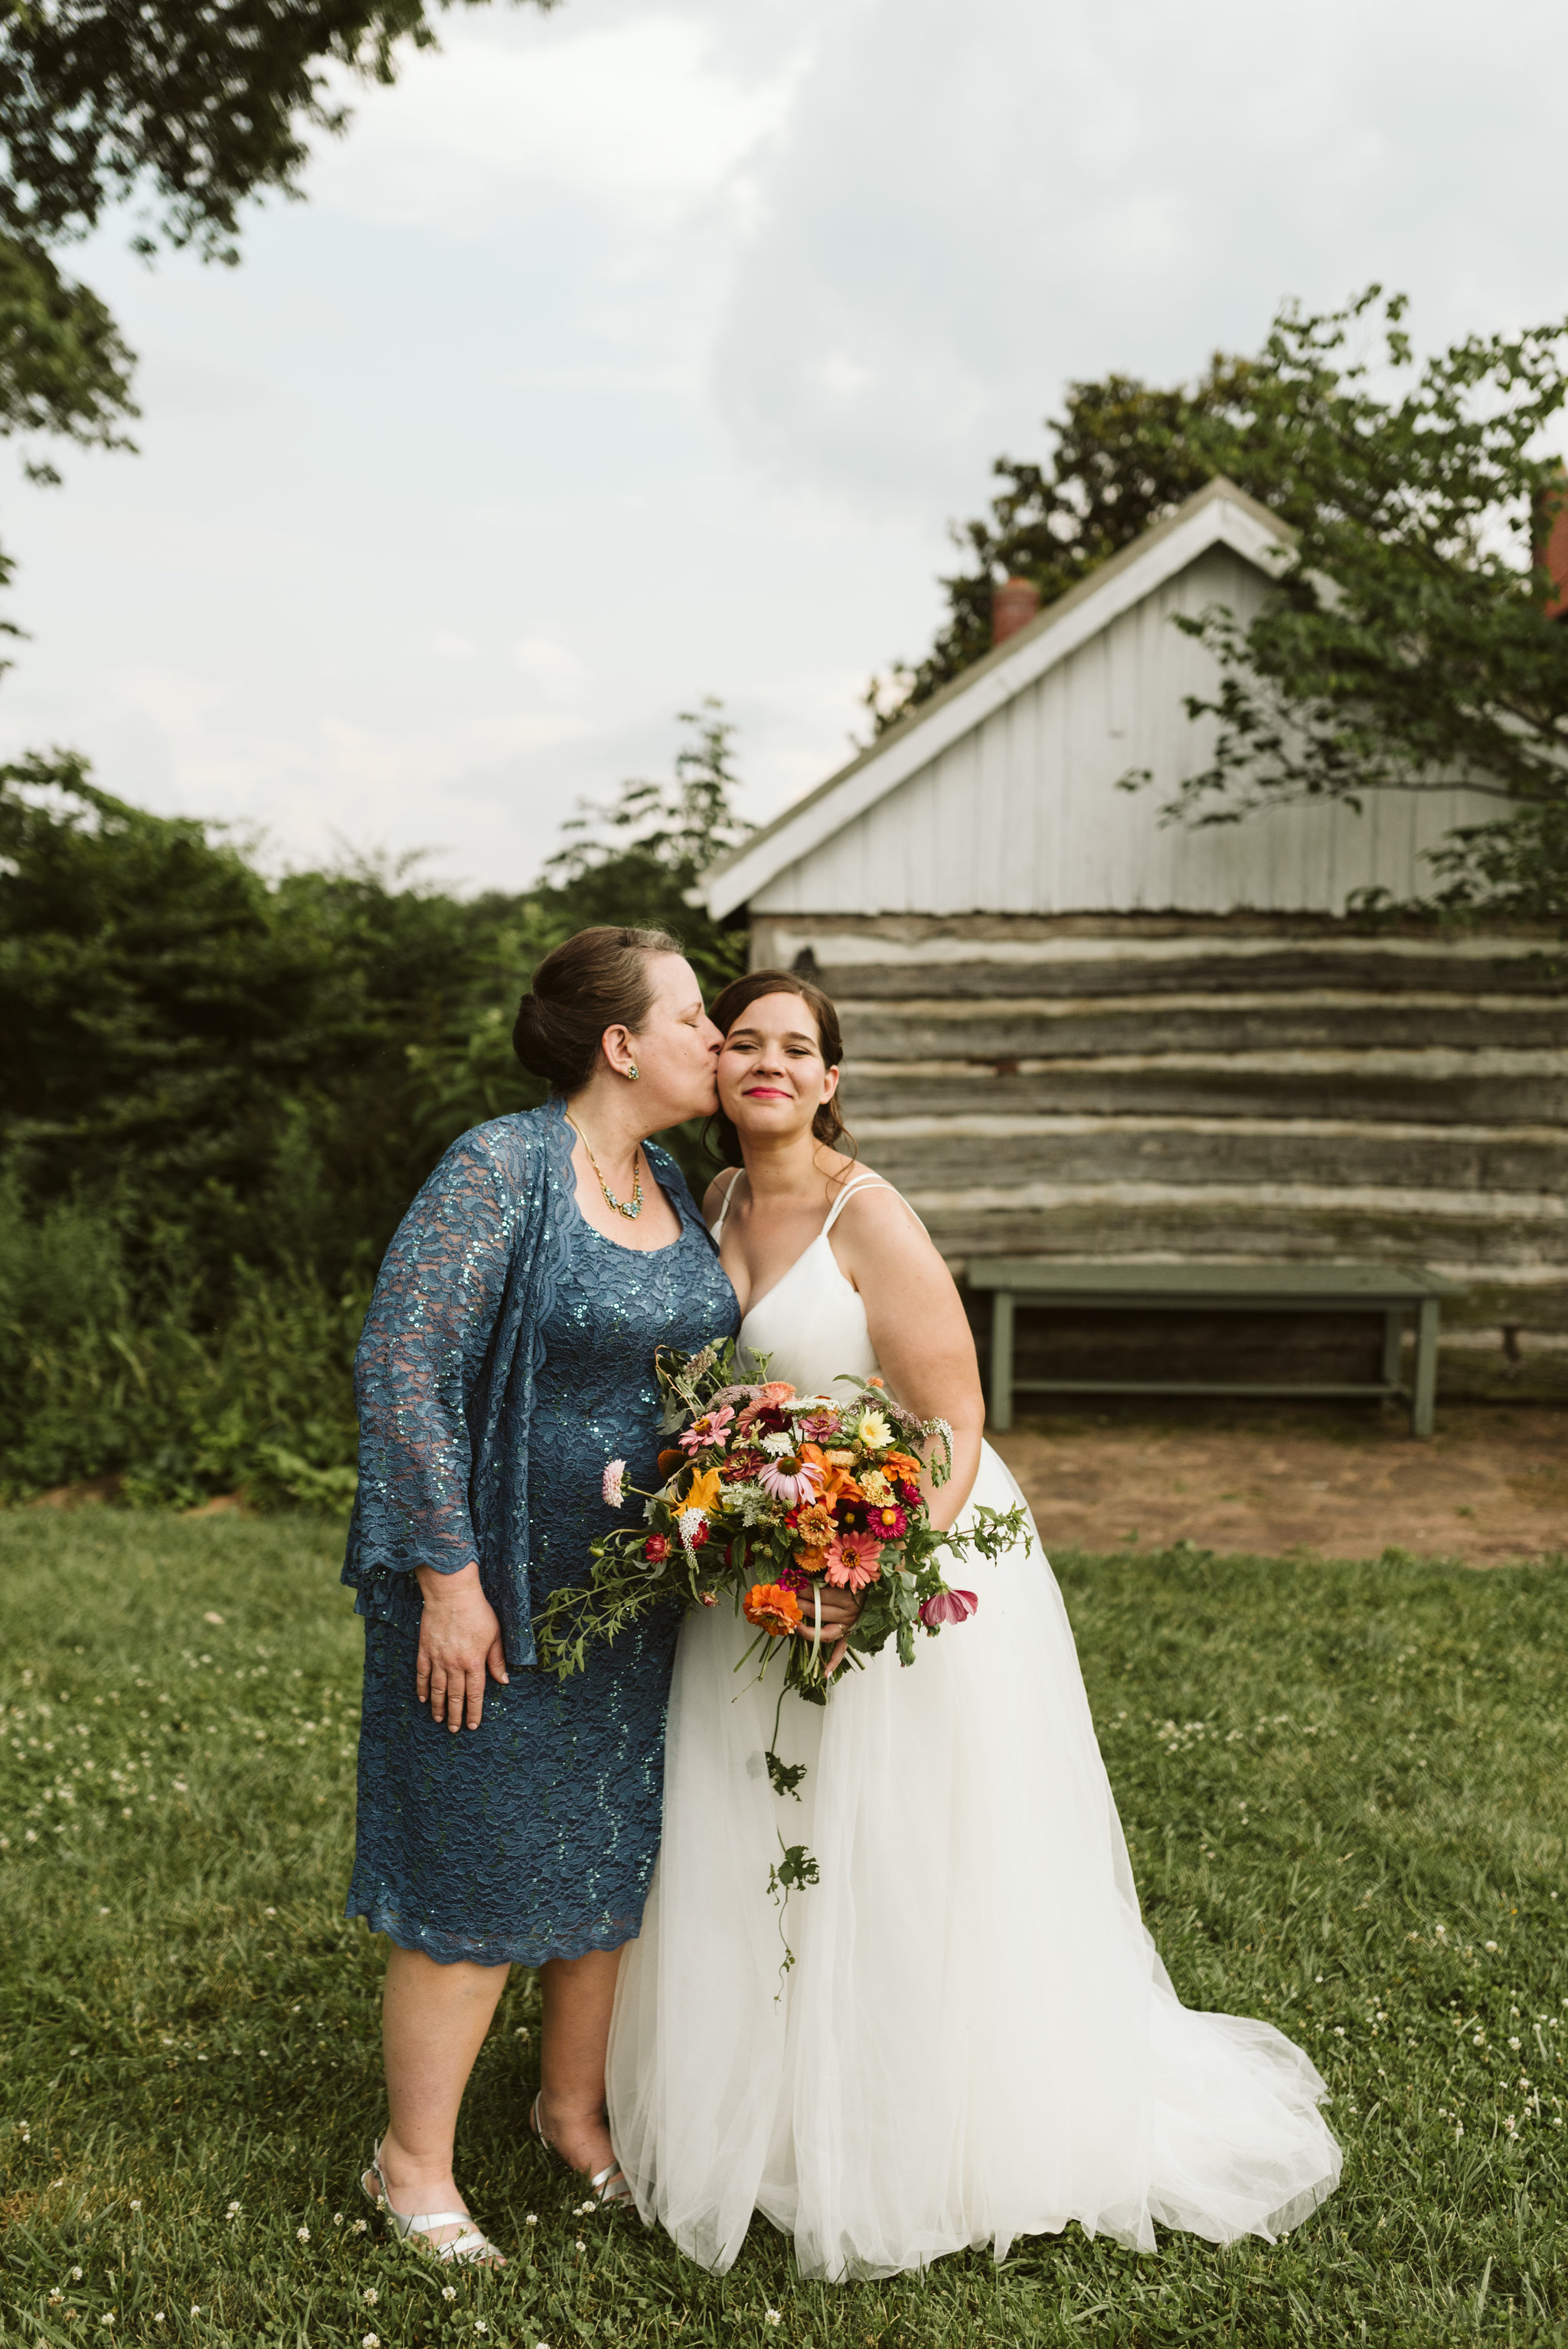 Rocklands Farm, Maryland, Intimate Wedding, Baltimore Wedding Photographer, Sungold Flower Co, Rustic, Romantic, Barn Wedding, Bride and Mother of the Bride, Family Portrait